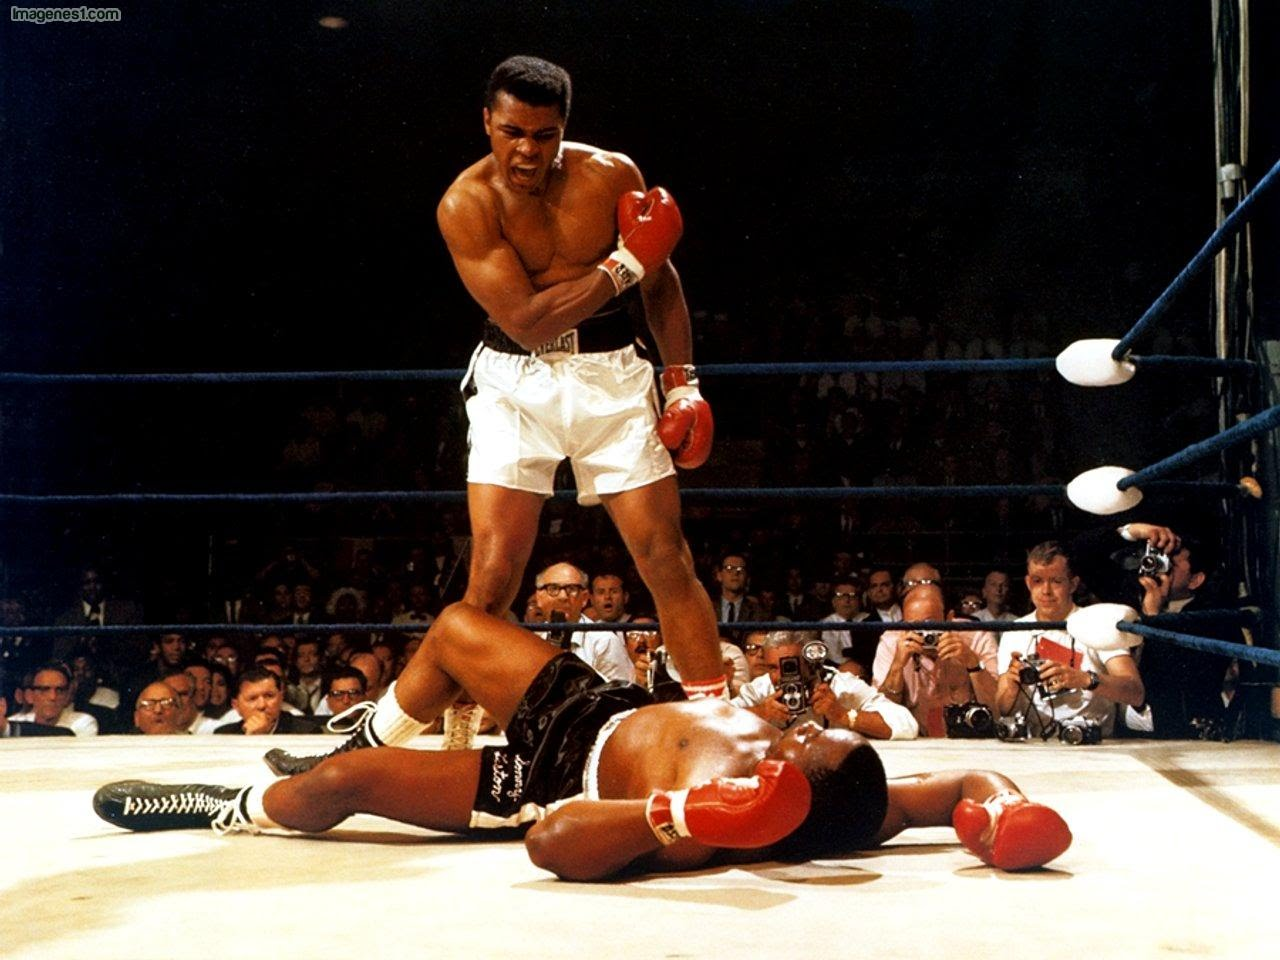 Muhammad ali the greatest of all times the boxing legend died at 74